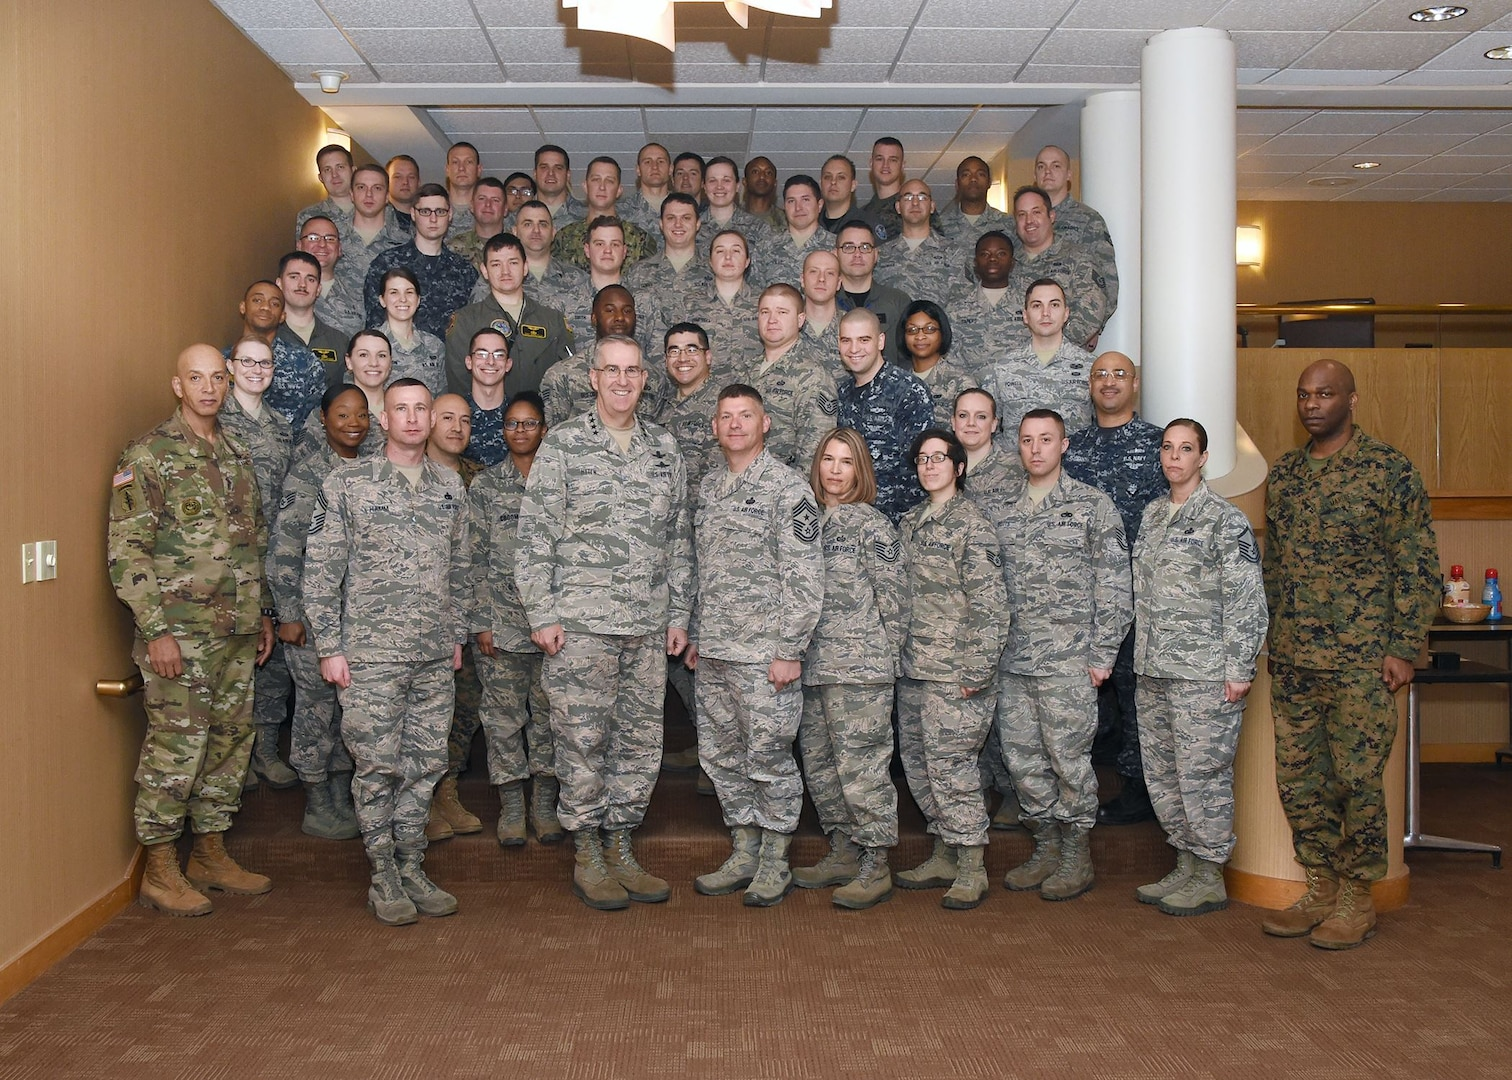 U.S. Air Force Gen. John Hyten (front, third from left), commander of U.S. Strategic Command (USSTRATCOM); U.S. Air Force Chief Master Sgt. Patrick McMahon (front, fourth from left), senior enlisted leader of USSTRATCOM; and other senior enlisted leaders mentored participants of the inaugural non-commissioned officer (NCO) and petty officer (PO) joint professional development seminar at Offutt Air Force Base, Neb., Jan. 25, 2018. During the two-day course, NCOs and POs assigned to USSTRATCOM and the 55th Wing discussed leadership techniques with senior enlisted leaders and officers through a series of discussion panels and briefings. This pilot course was developed by USSTRATCOM's senior enlisted leaders to enhance the effectiveness of soldiers, sailors, airmen and Marines at the E-5 and E-6 level through joint professional military education.